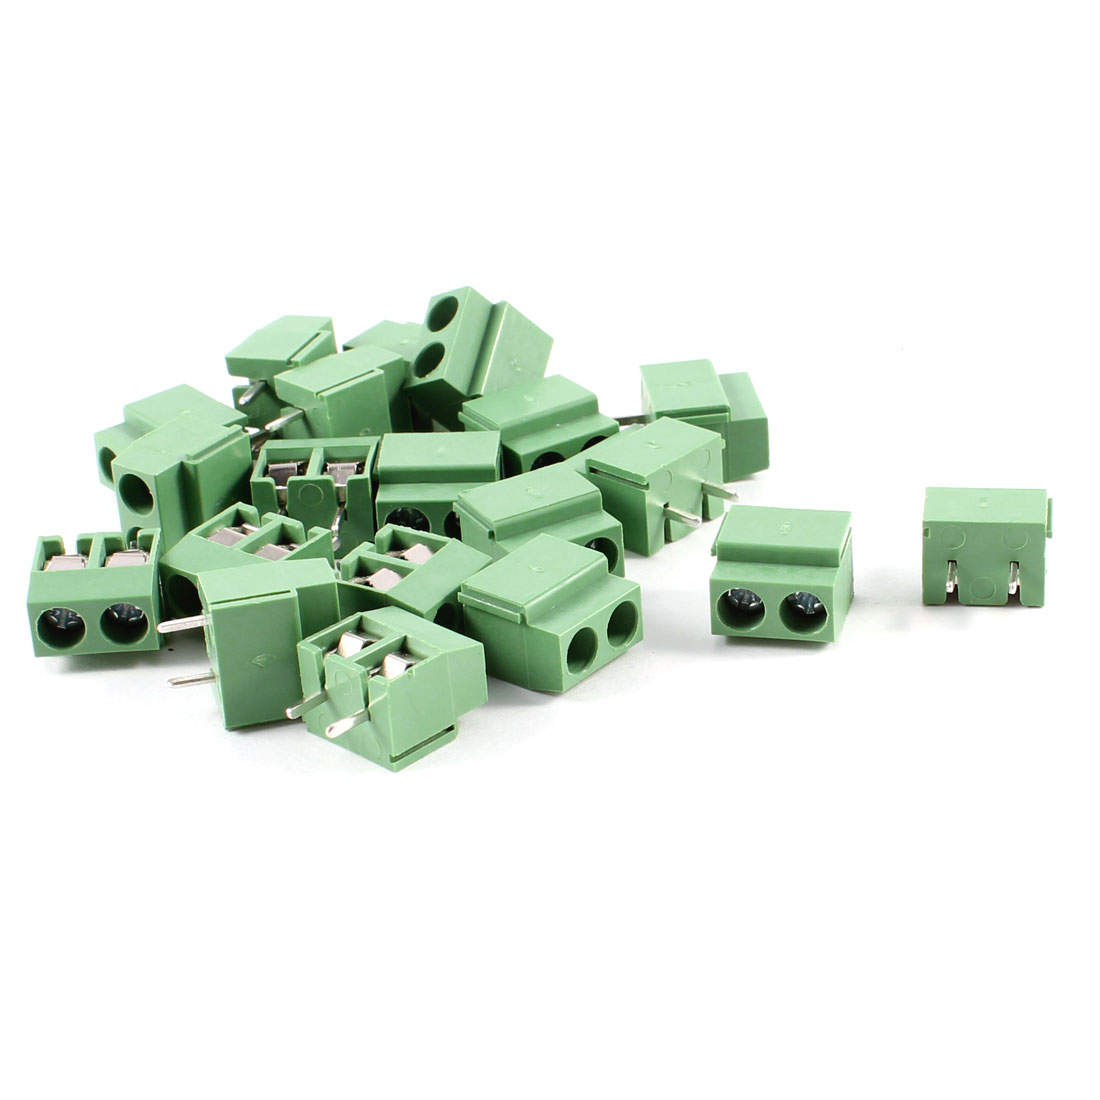 20Pcs 2 Pole 5mm Pitch PCB Mount Screw Terminal Block 8A 250V